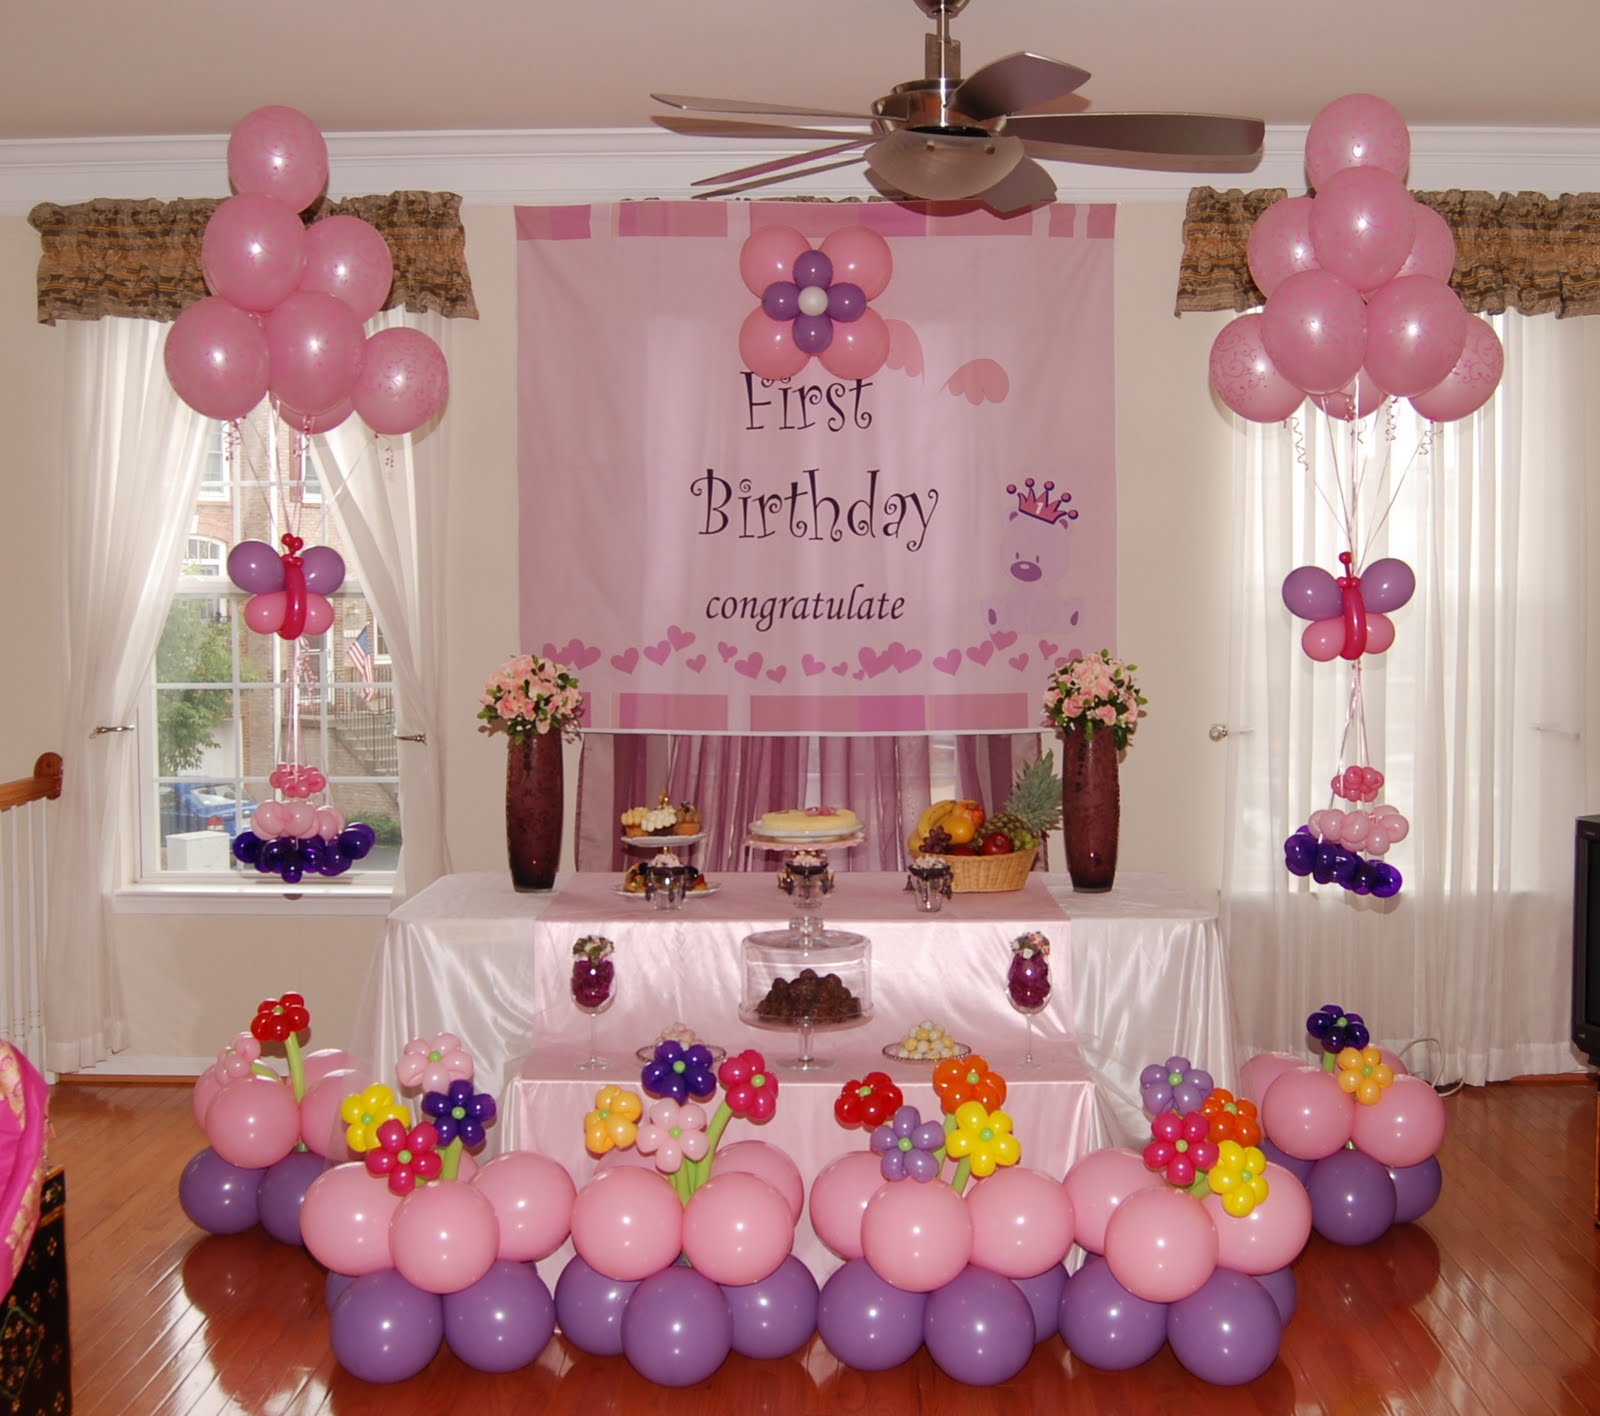 all the party needs a plan even a simple birthday party requires